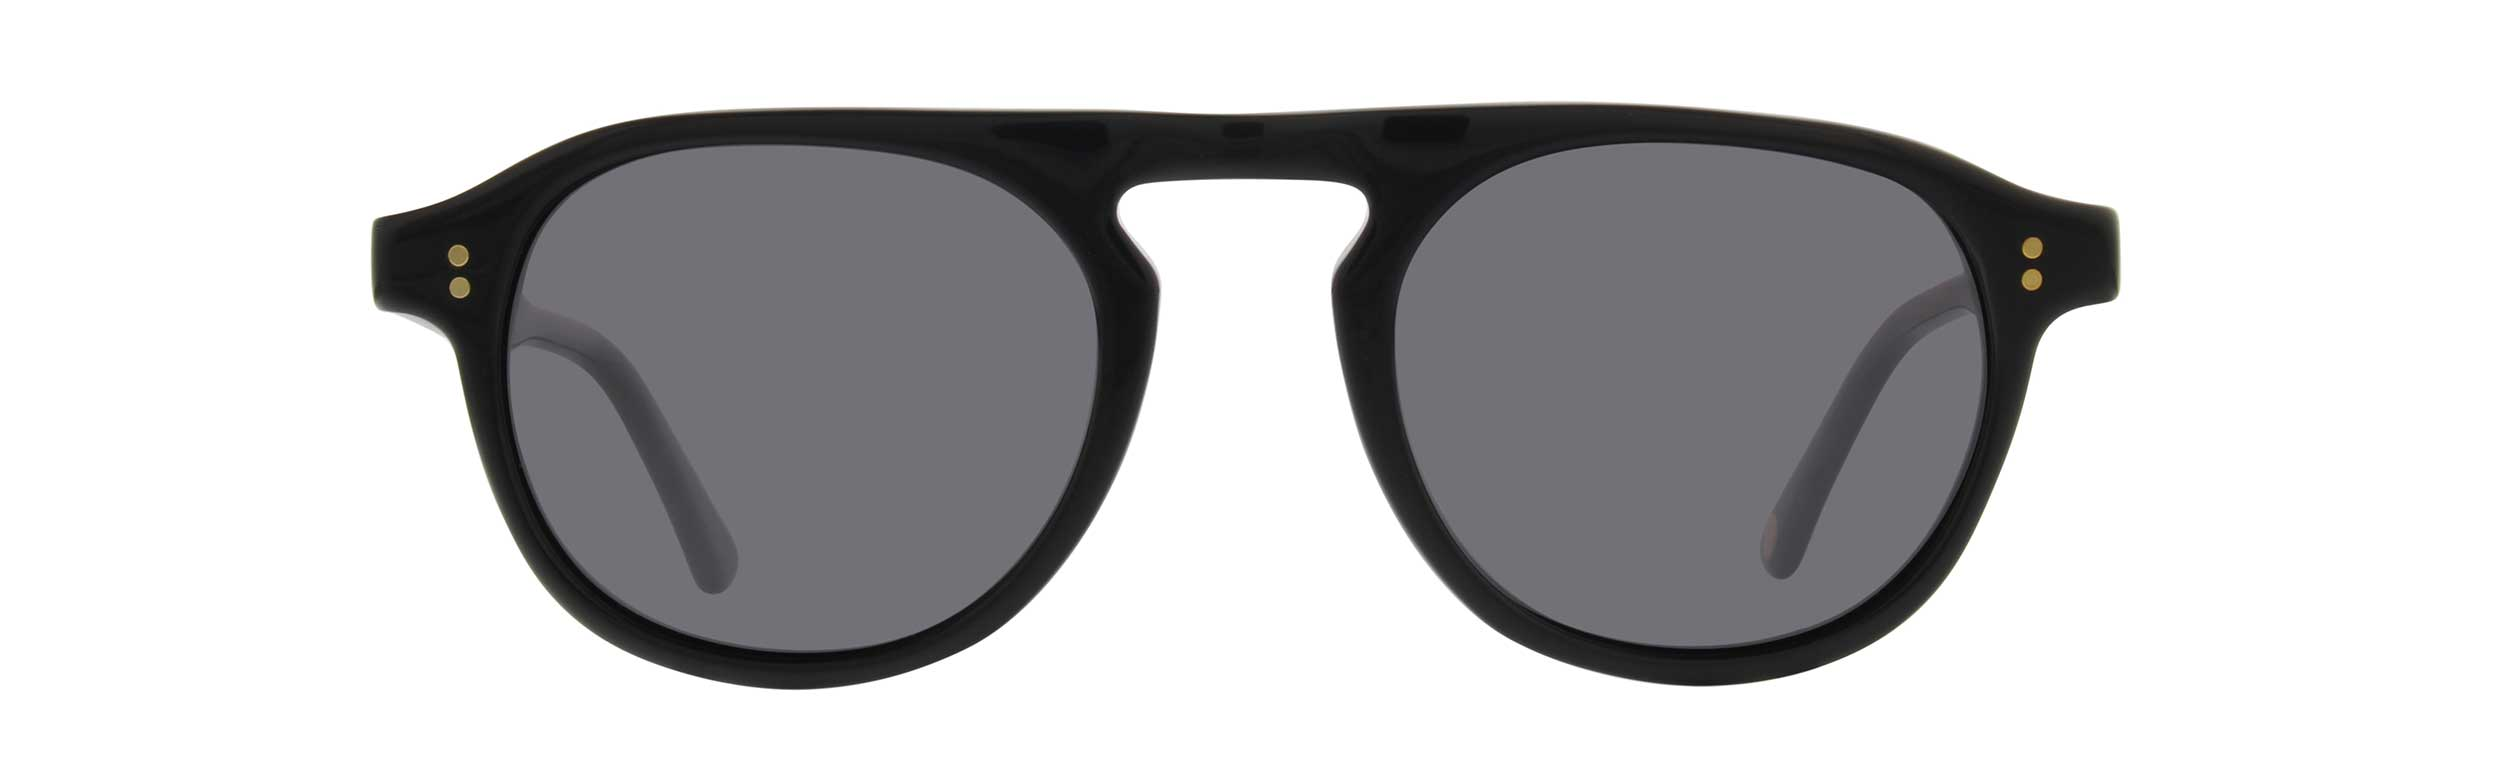 Davis Square Sunglasses